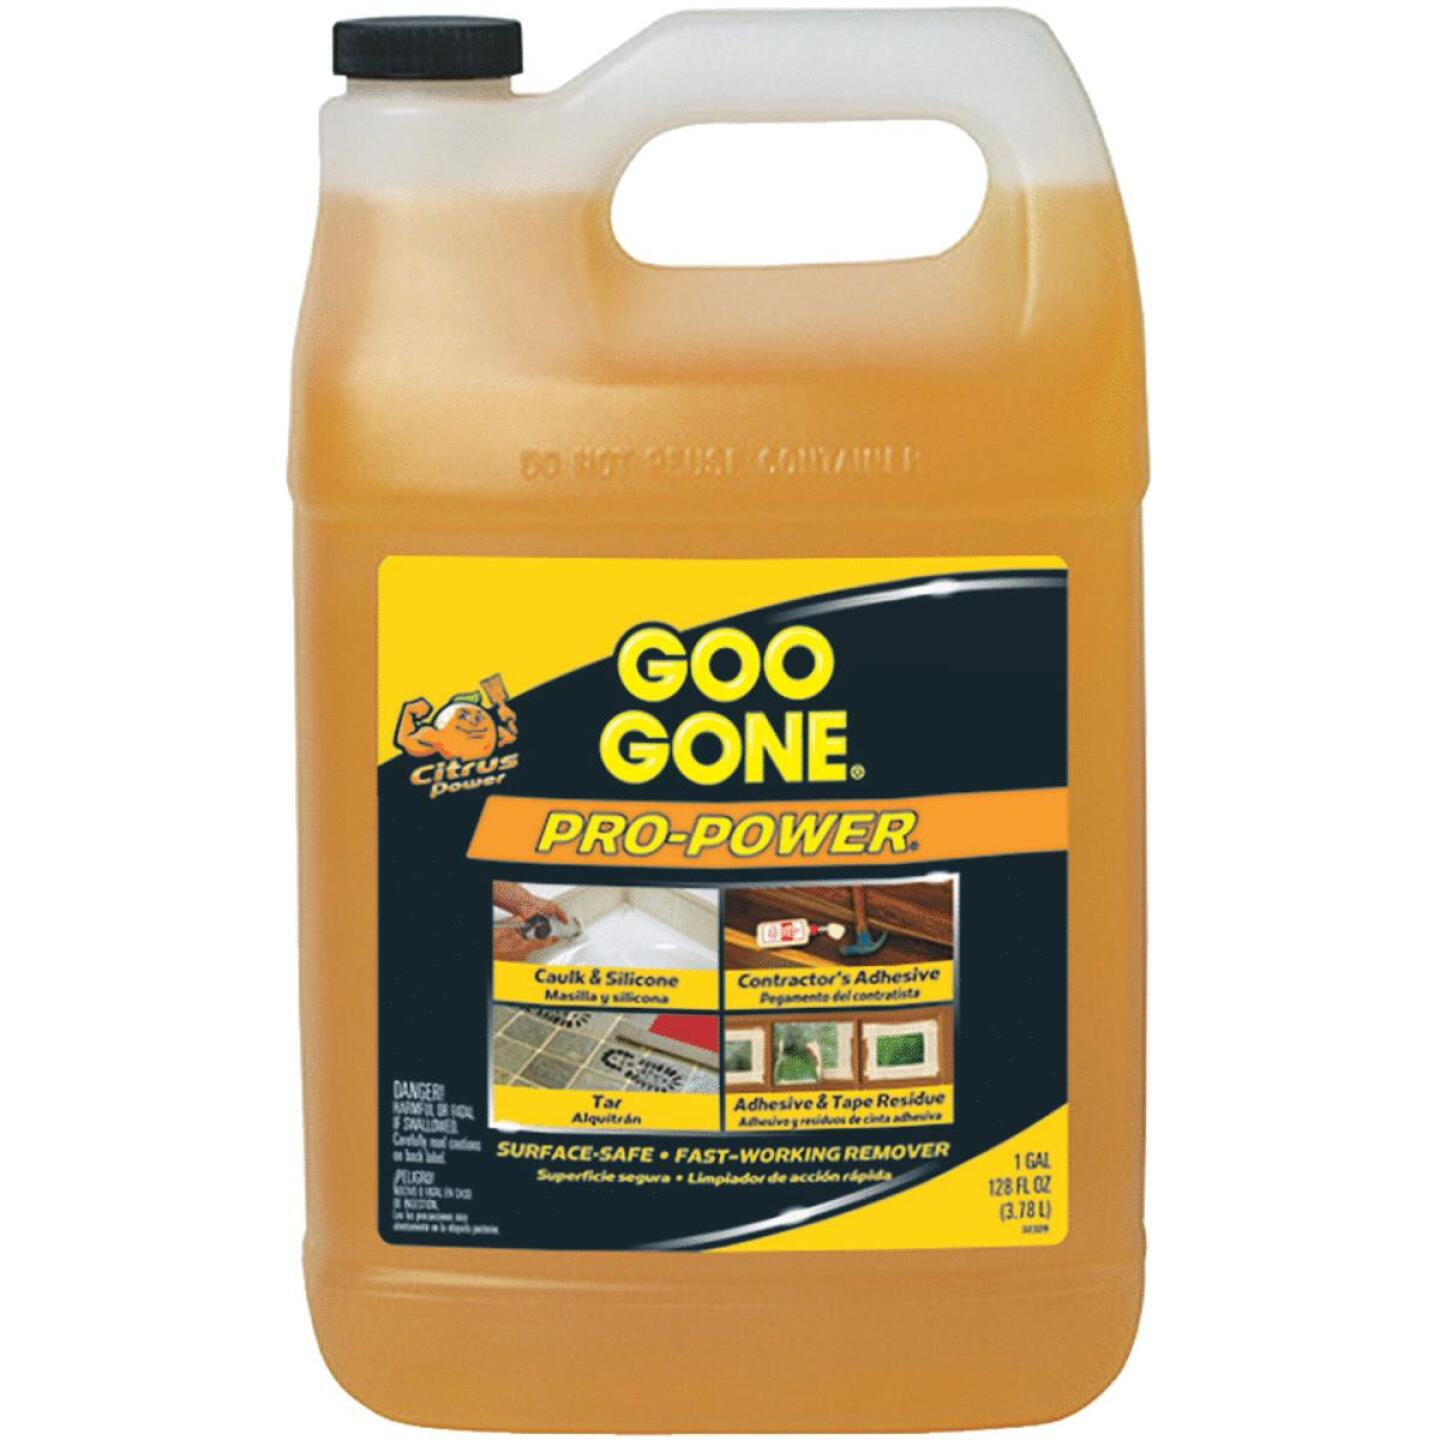 Goo Gone 1 Gal. Pro-Power Adhesive Remover Image 163